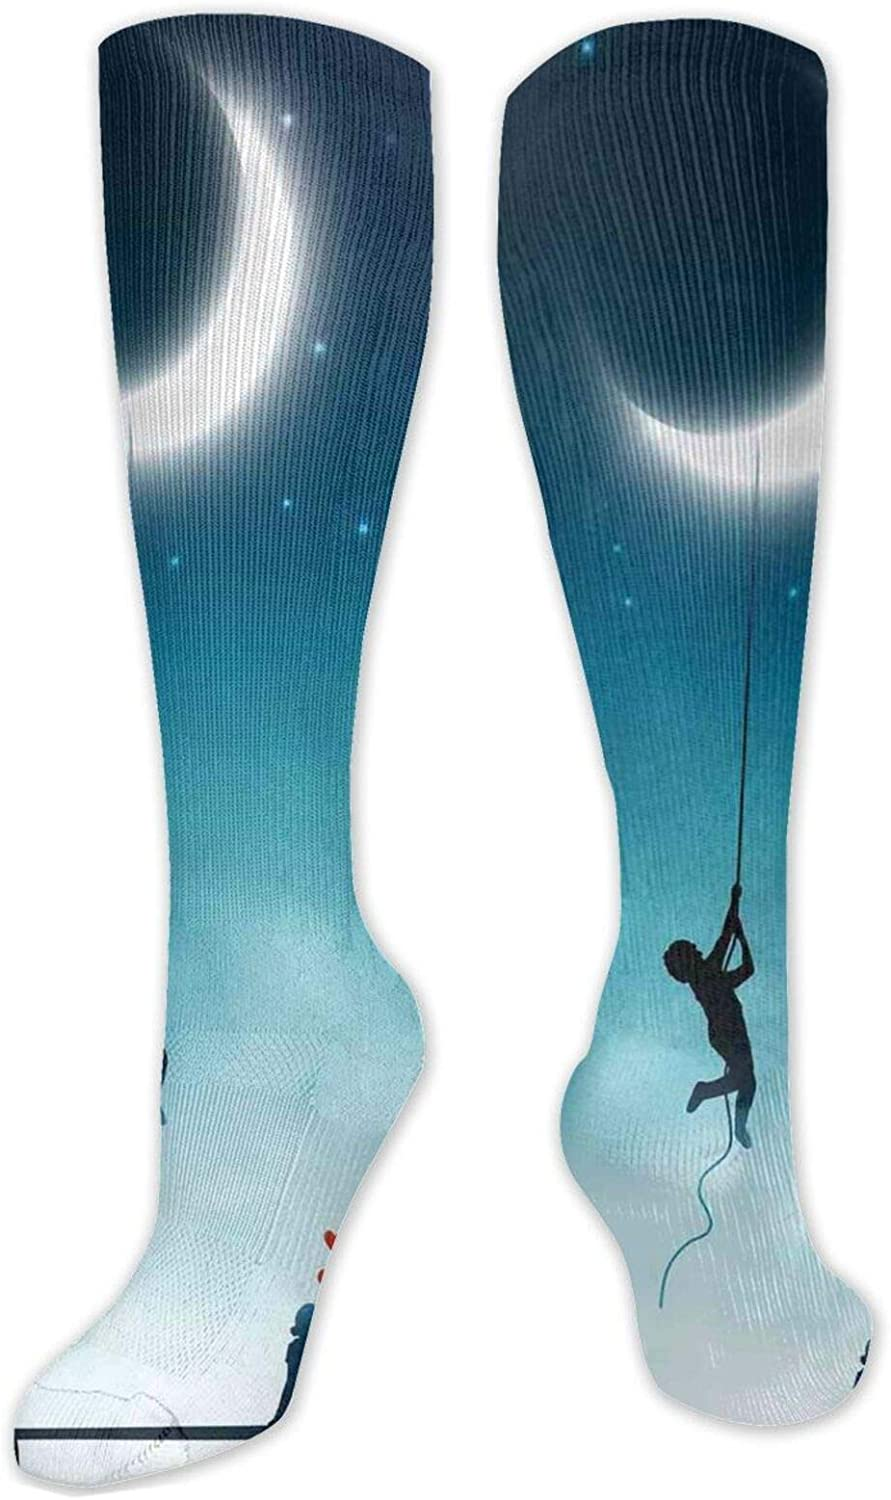 Compression High Socks-Boy Climbing To The Moon With Rope And Girl On Bench Love Valentines Fantasy,Socks Women and Men - Best for Running,Athletic,Hiking,Travel,Flight